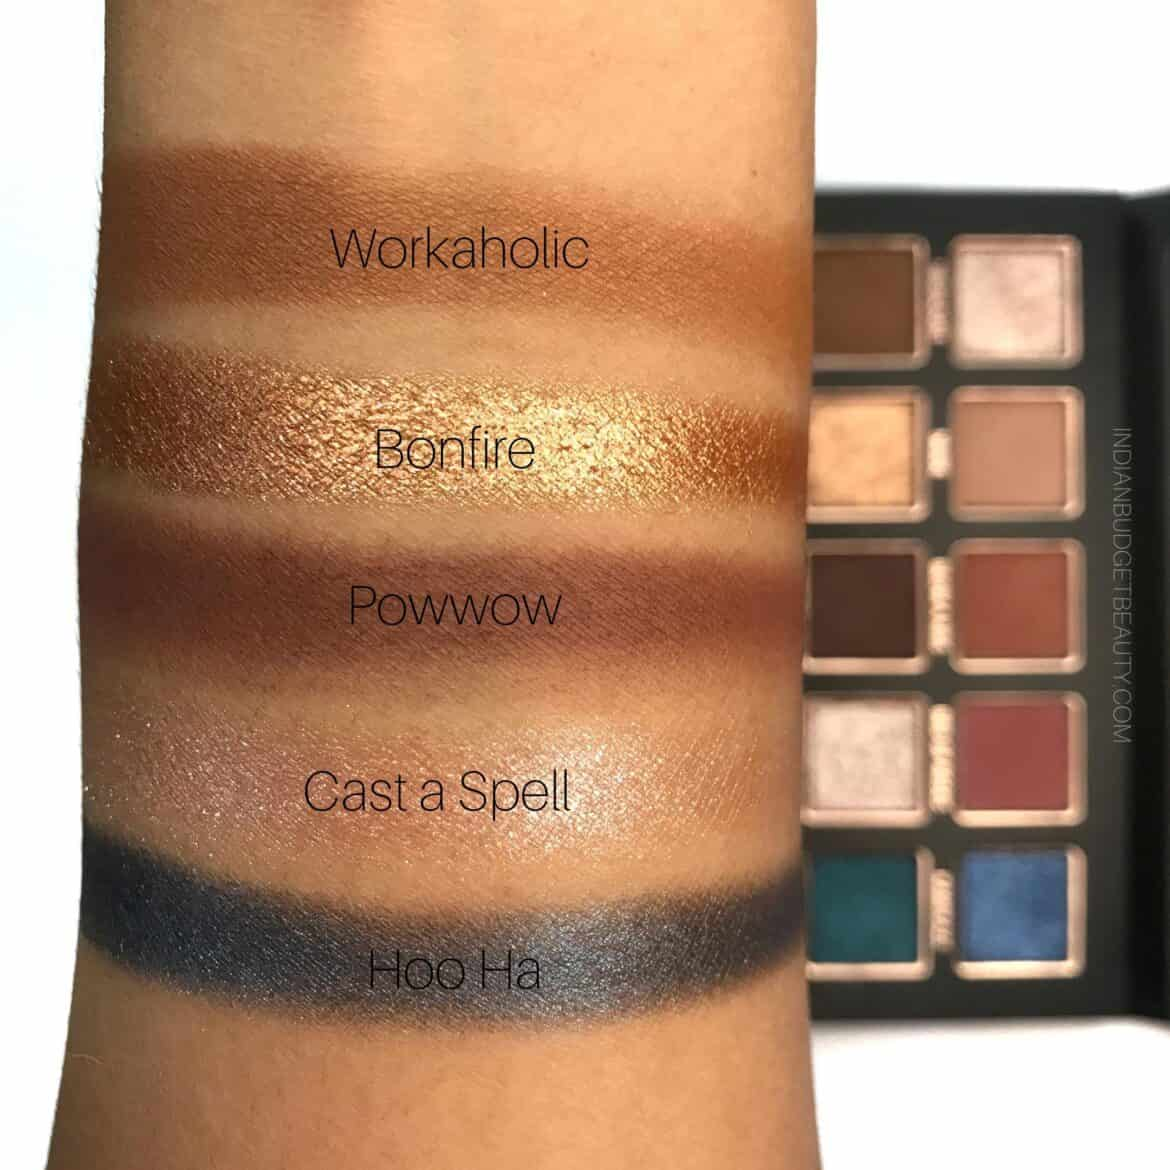 Tann Beauty This Is All I Need Eyeshadow Palette Swatches